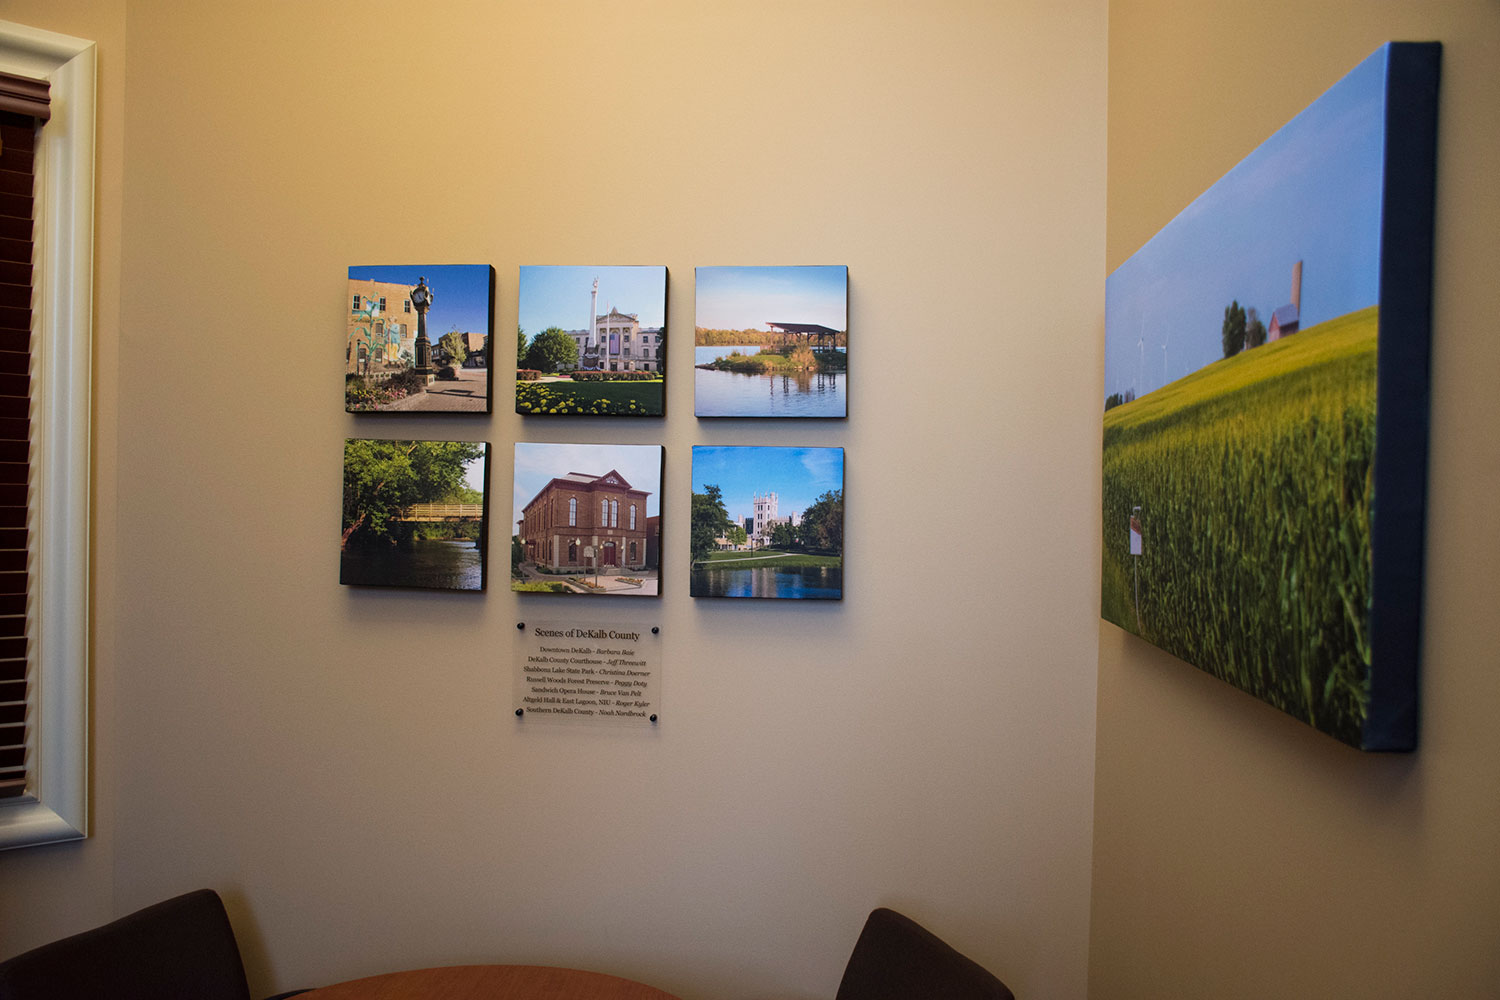 DeKalb County Community Foundation, DeKalb County, DCCF, photography, displays